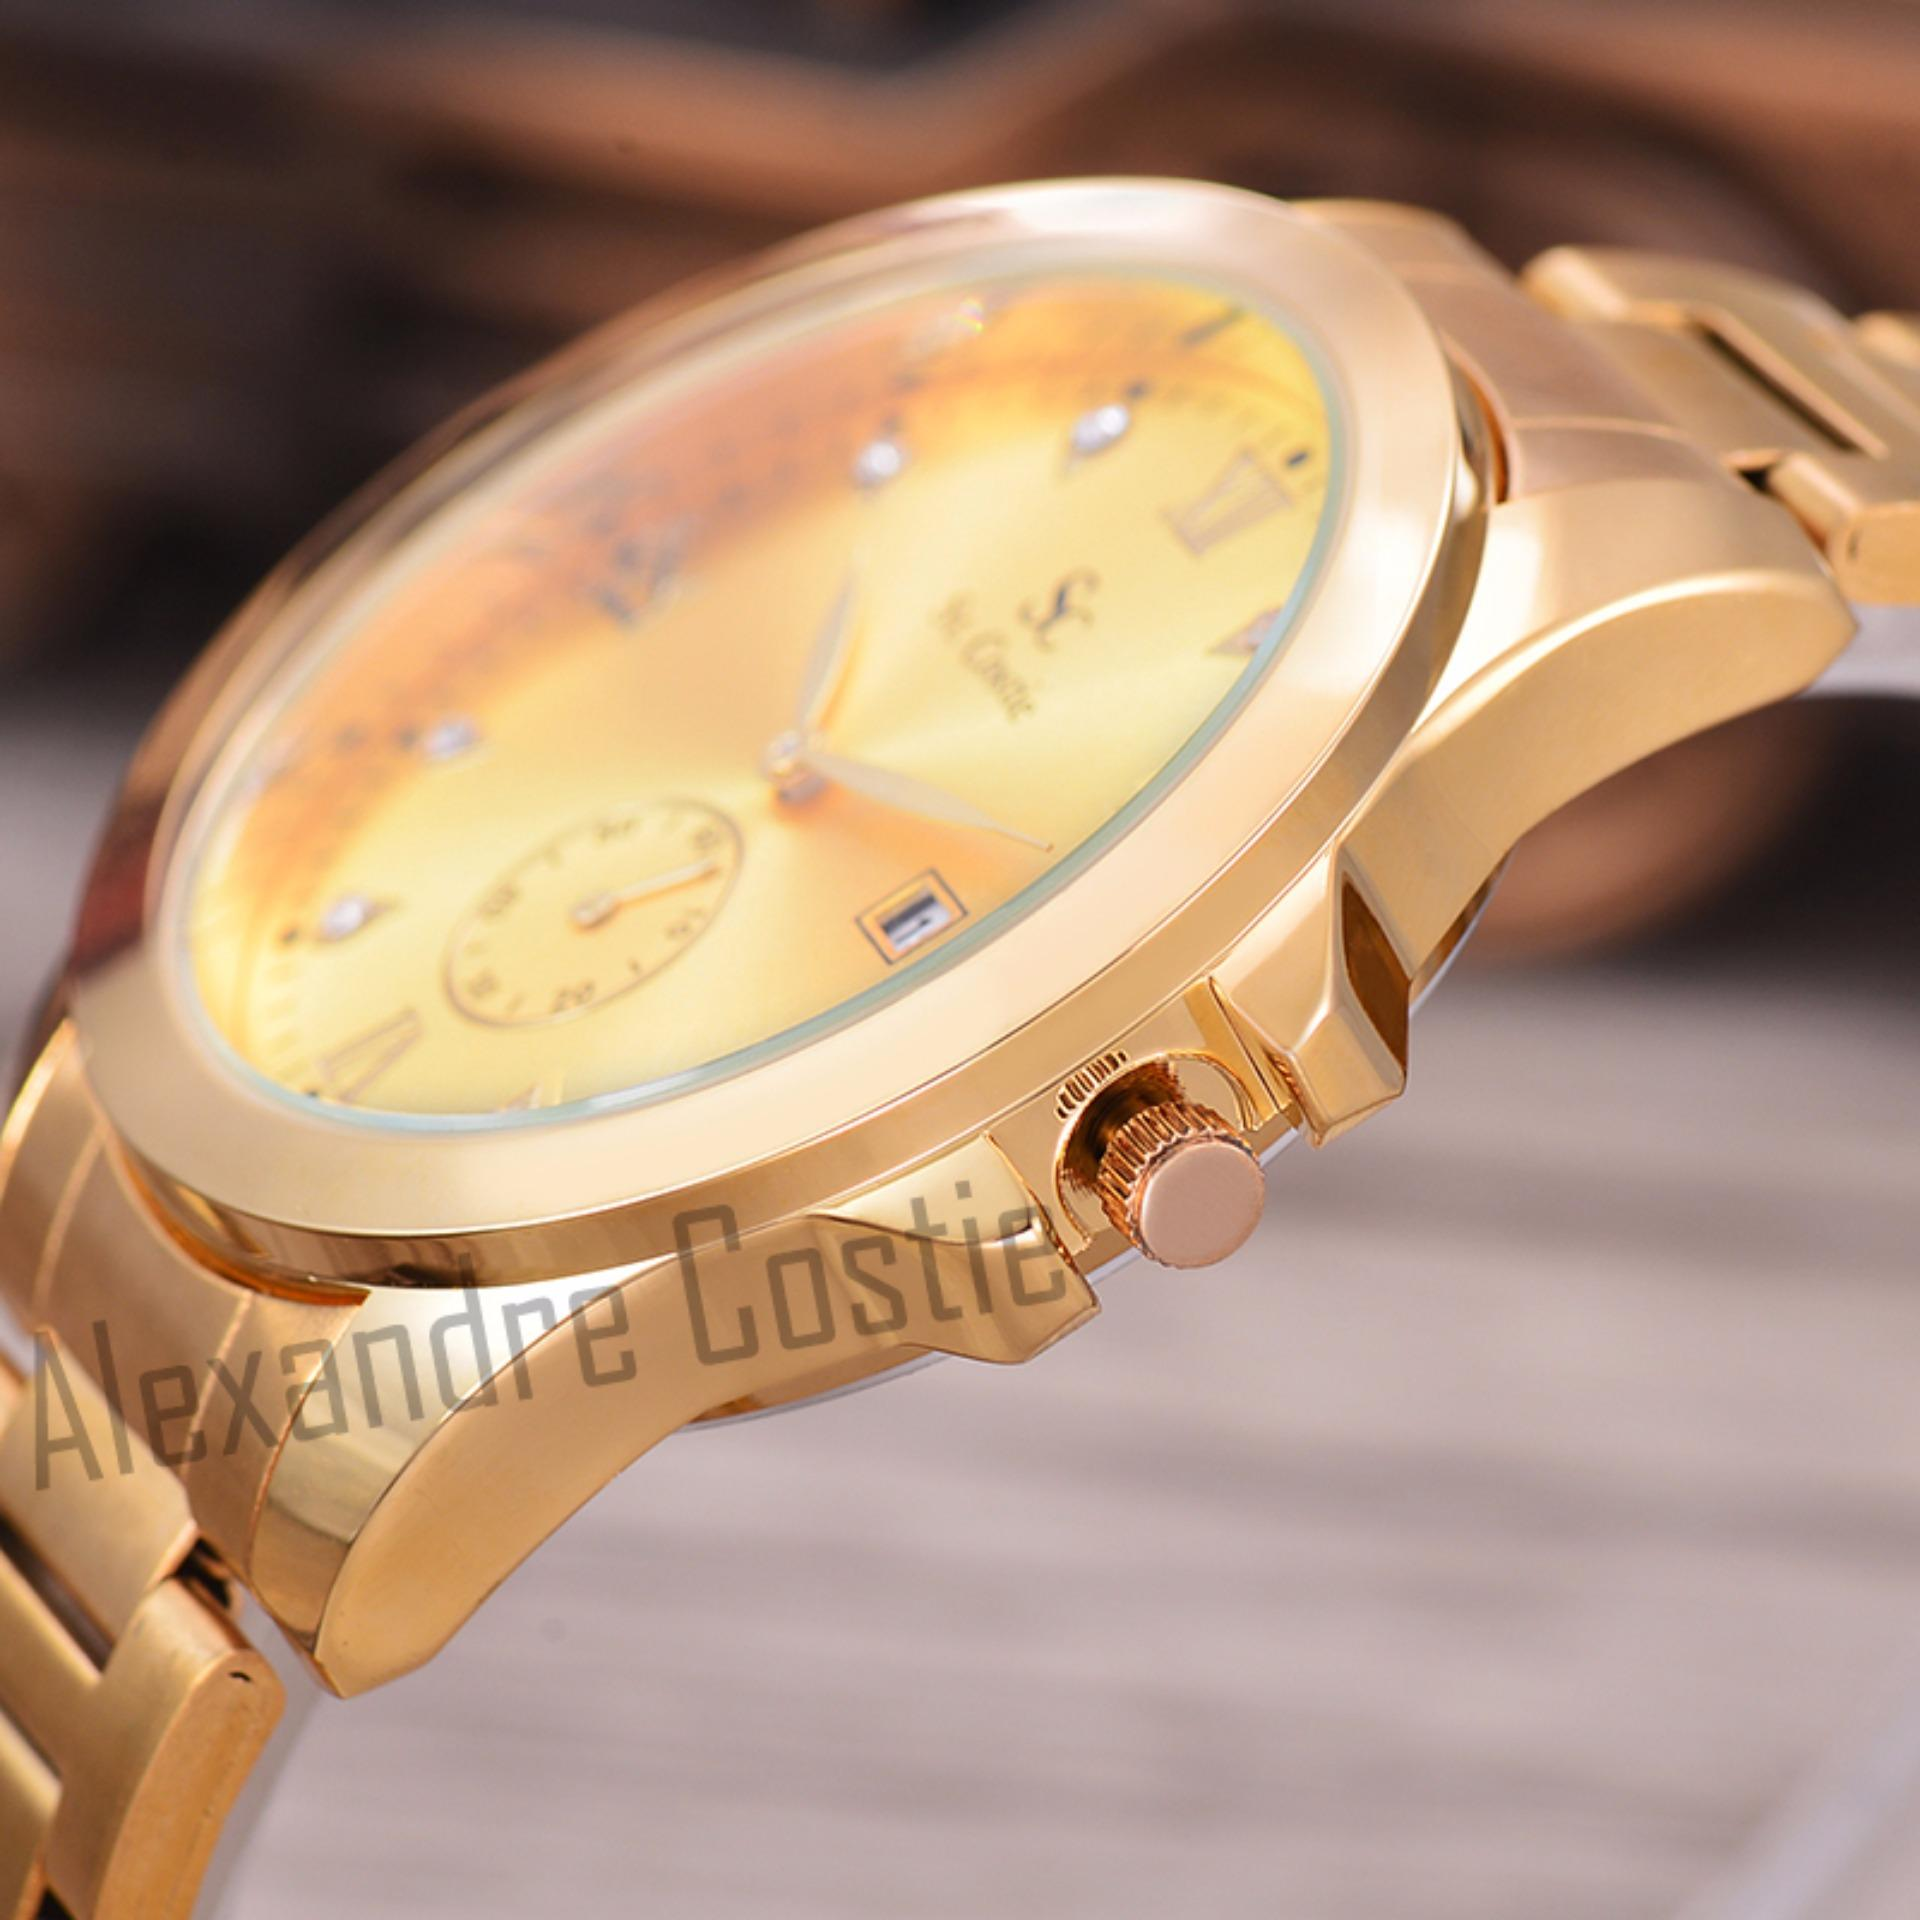 ... Stainless Steel Band Body Silver Gold White Dial Jam Tangan Couple -. Source · Saint Costie Original Brand, Jam Tangan Wanita - Body Gold - Gold .